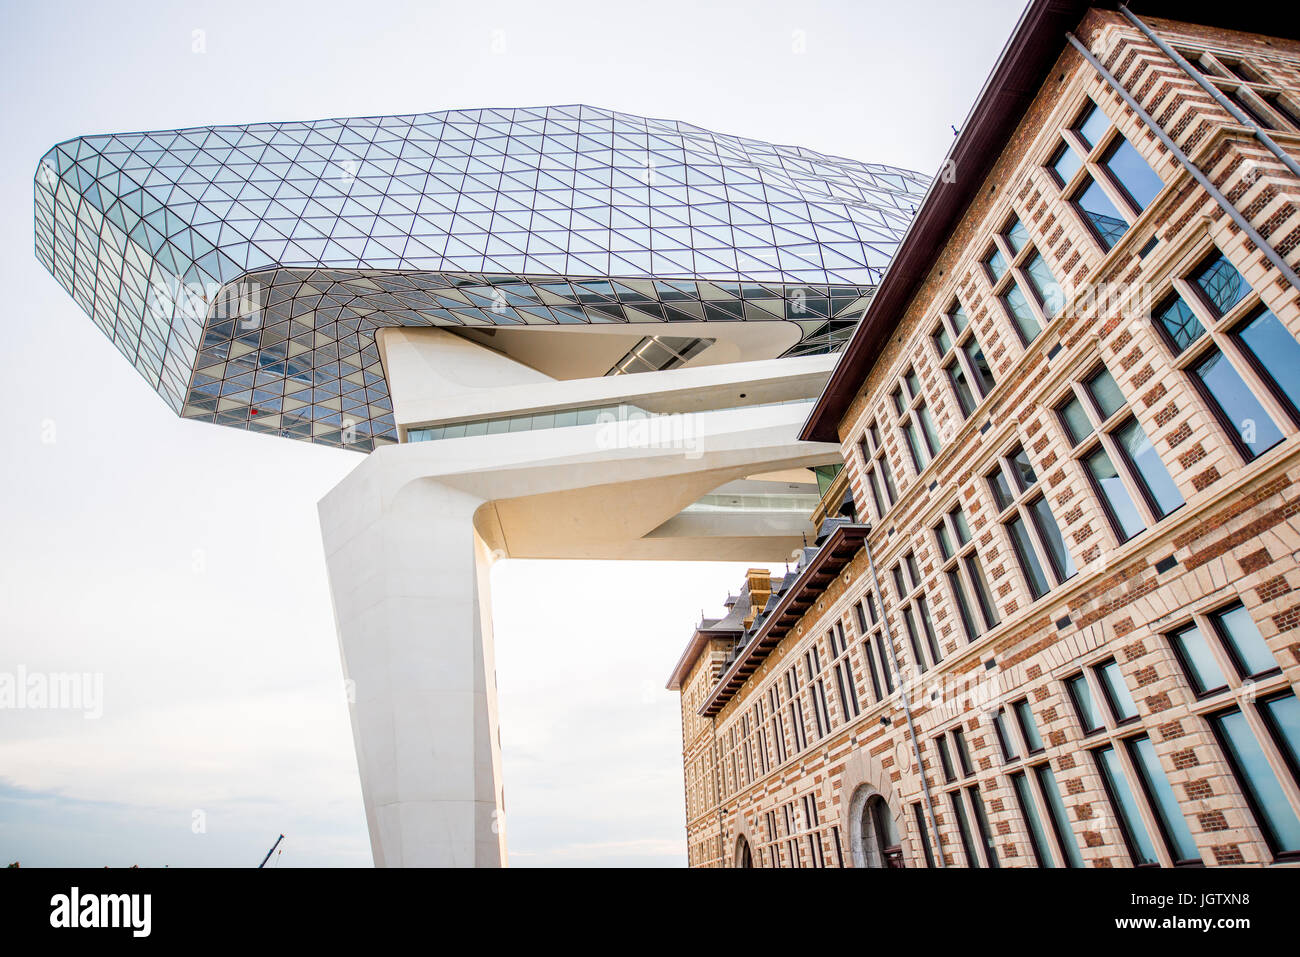 ANTWERPEN, BELGIUM - June 02, 2017: View from below on the Port House building designed by Zaha Hadid architect Stock Photo